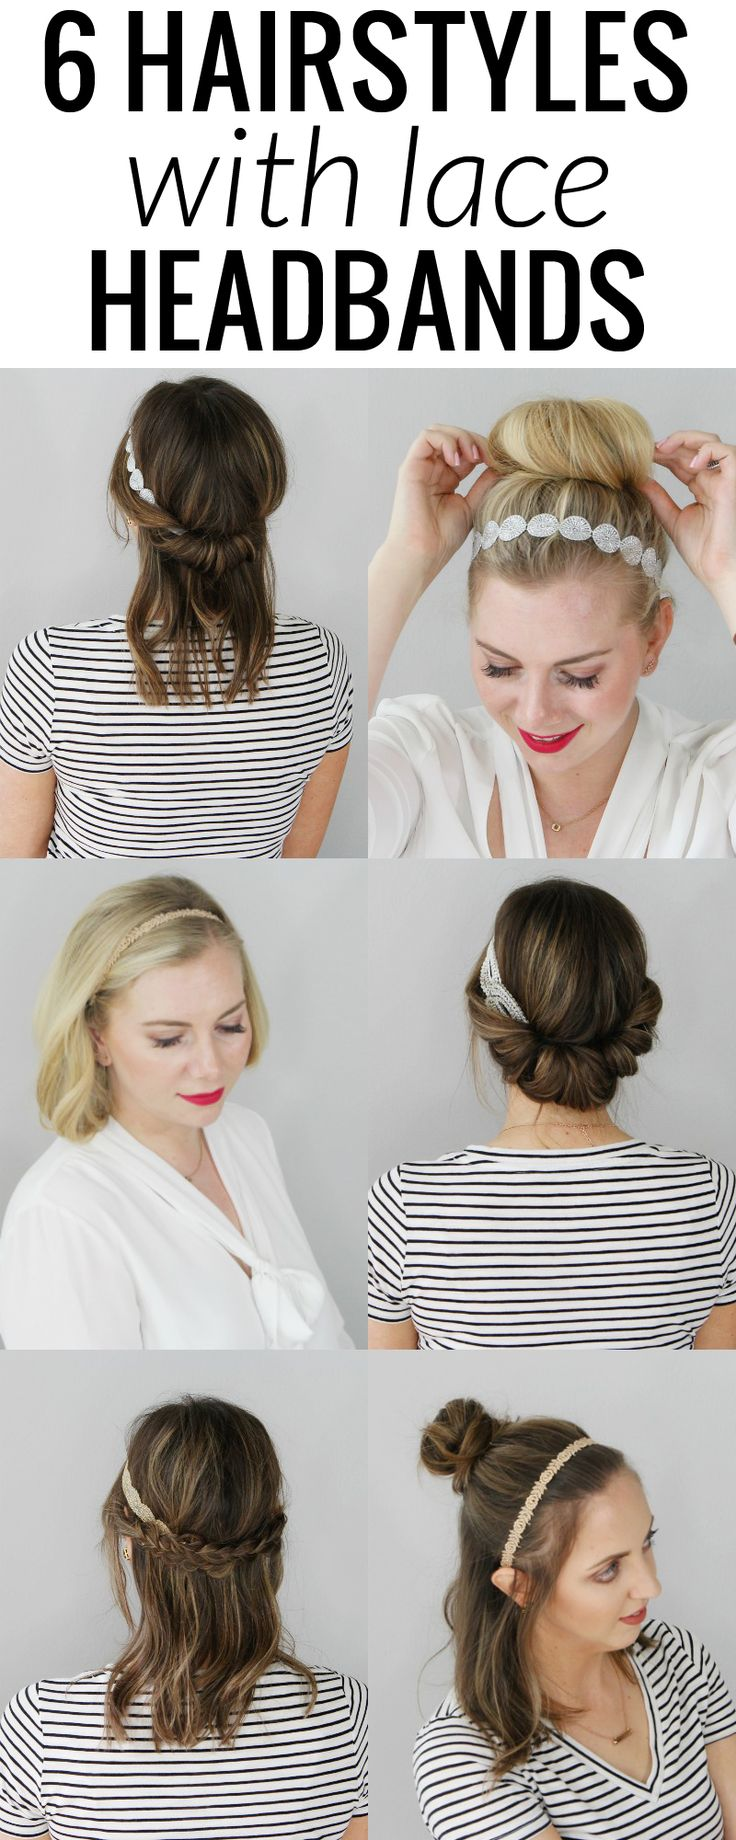 Easy Hairstyles On The Go 98 Best Images About Hairstyles On Pinterest Heart Braid Easy